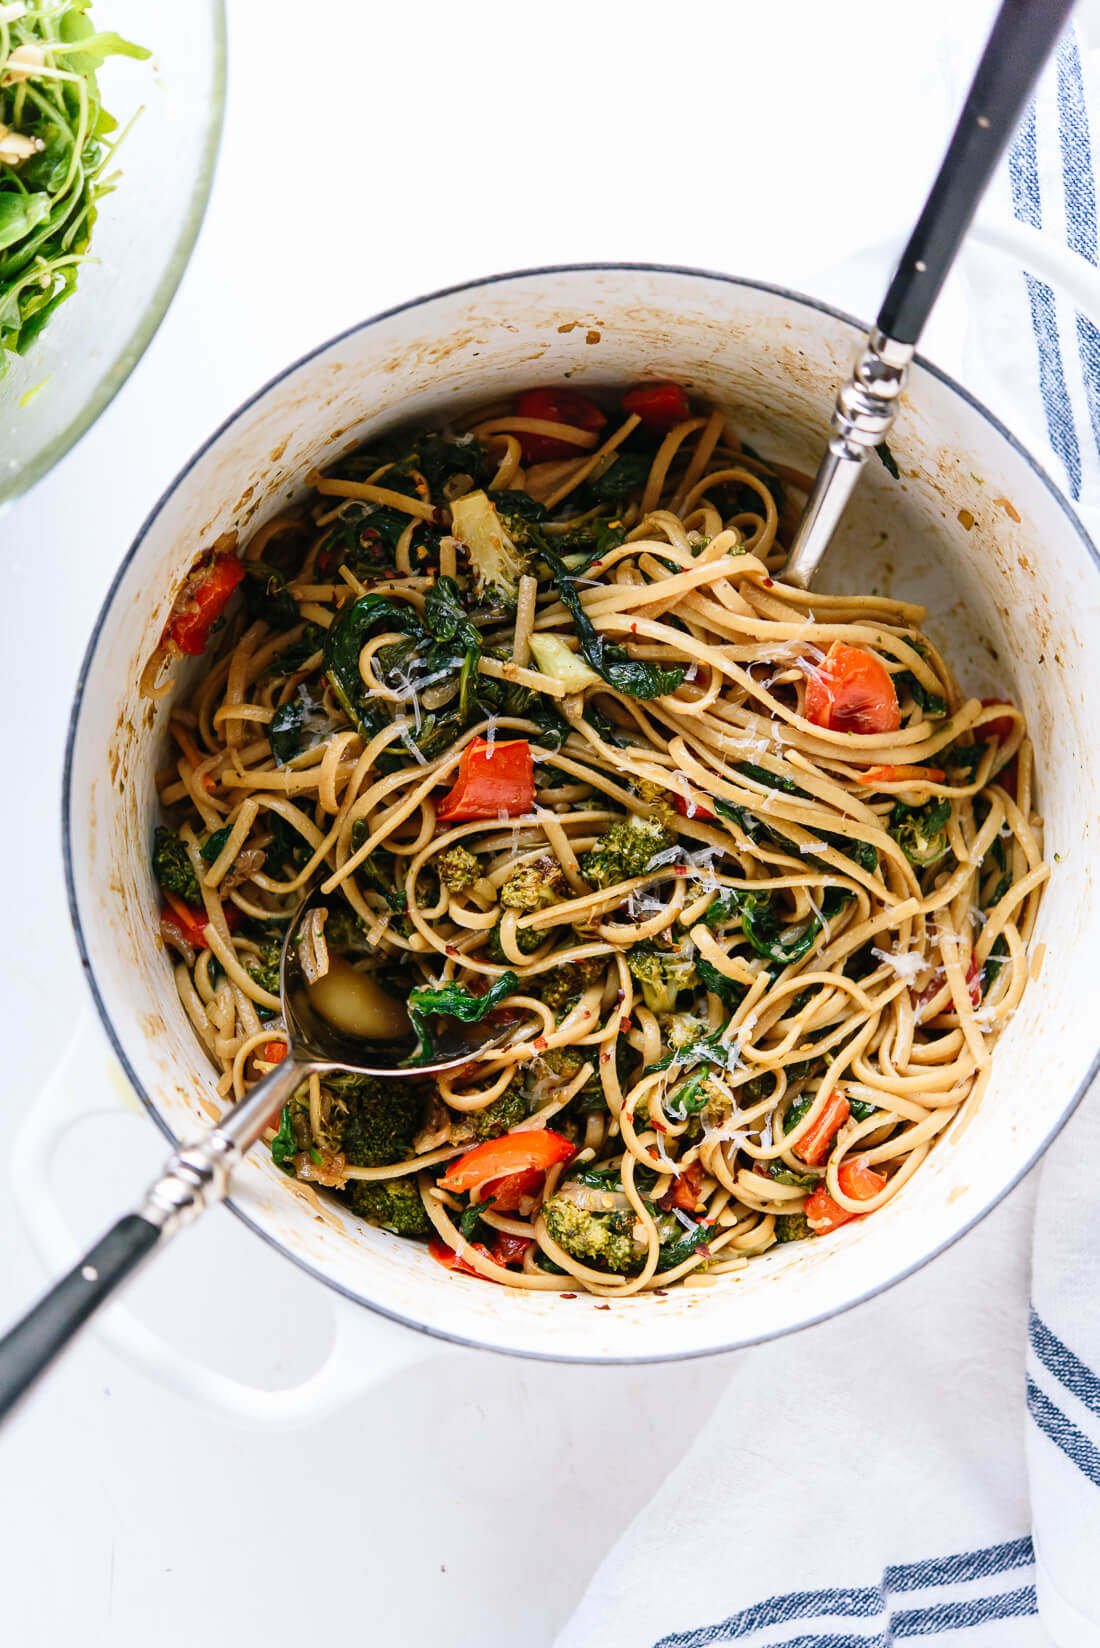 Roasted broccoli and bell pepper with spinach linguine